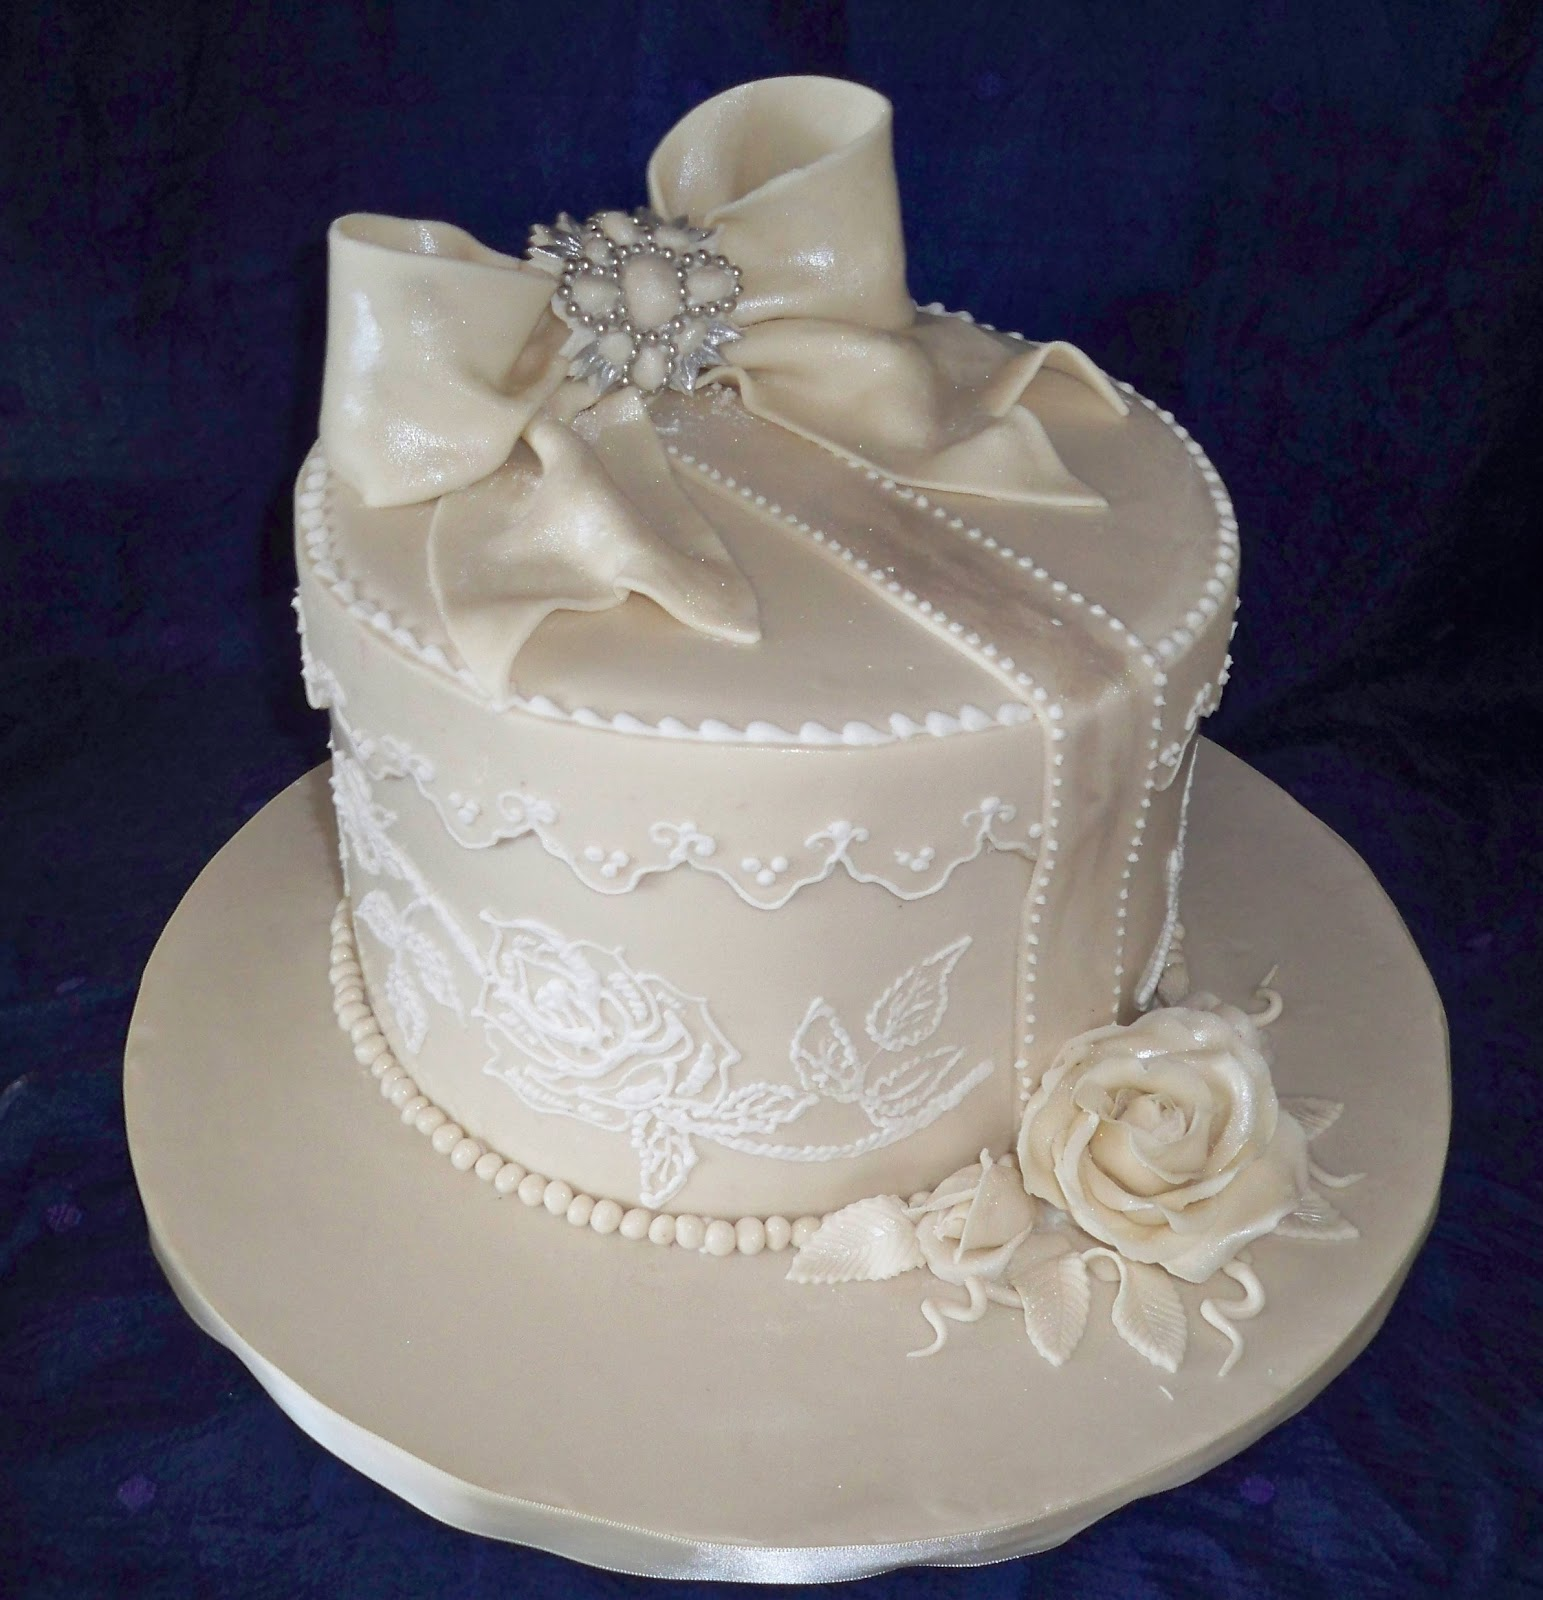 lace brooche and bow vintage style wedding cake. Black Bedroom Furniture Sets. Home Design Ideas